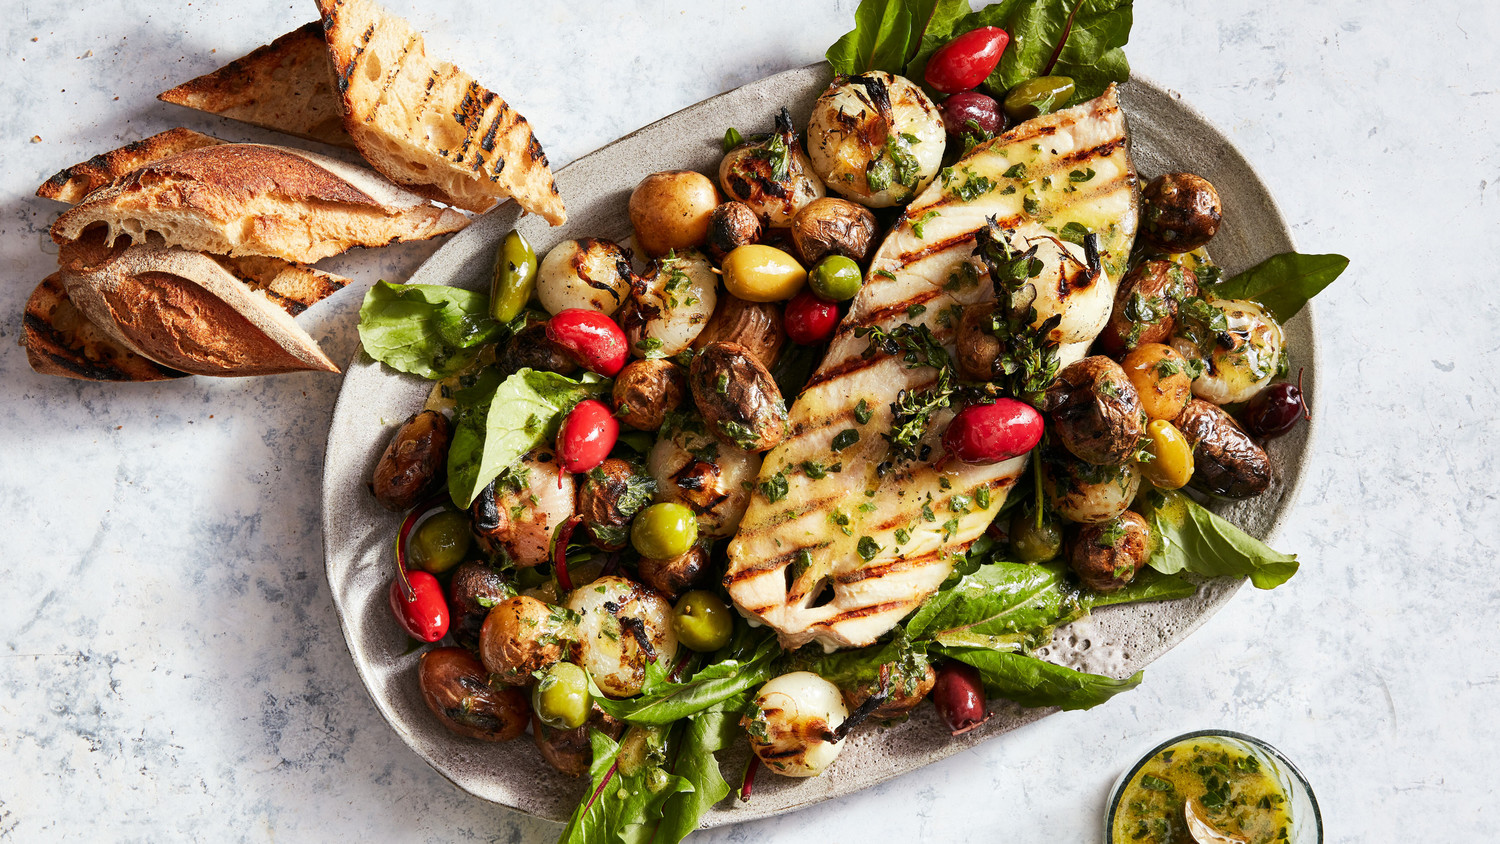 Grilled Halibut Steaks with Potatoes, Olives, and Onions